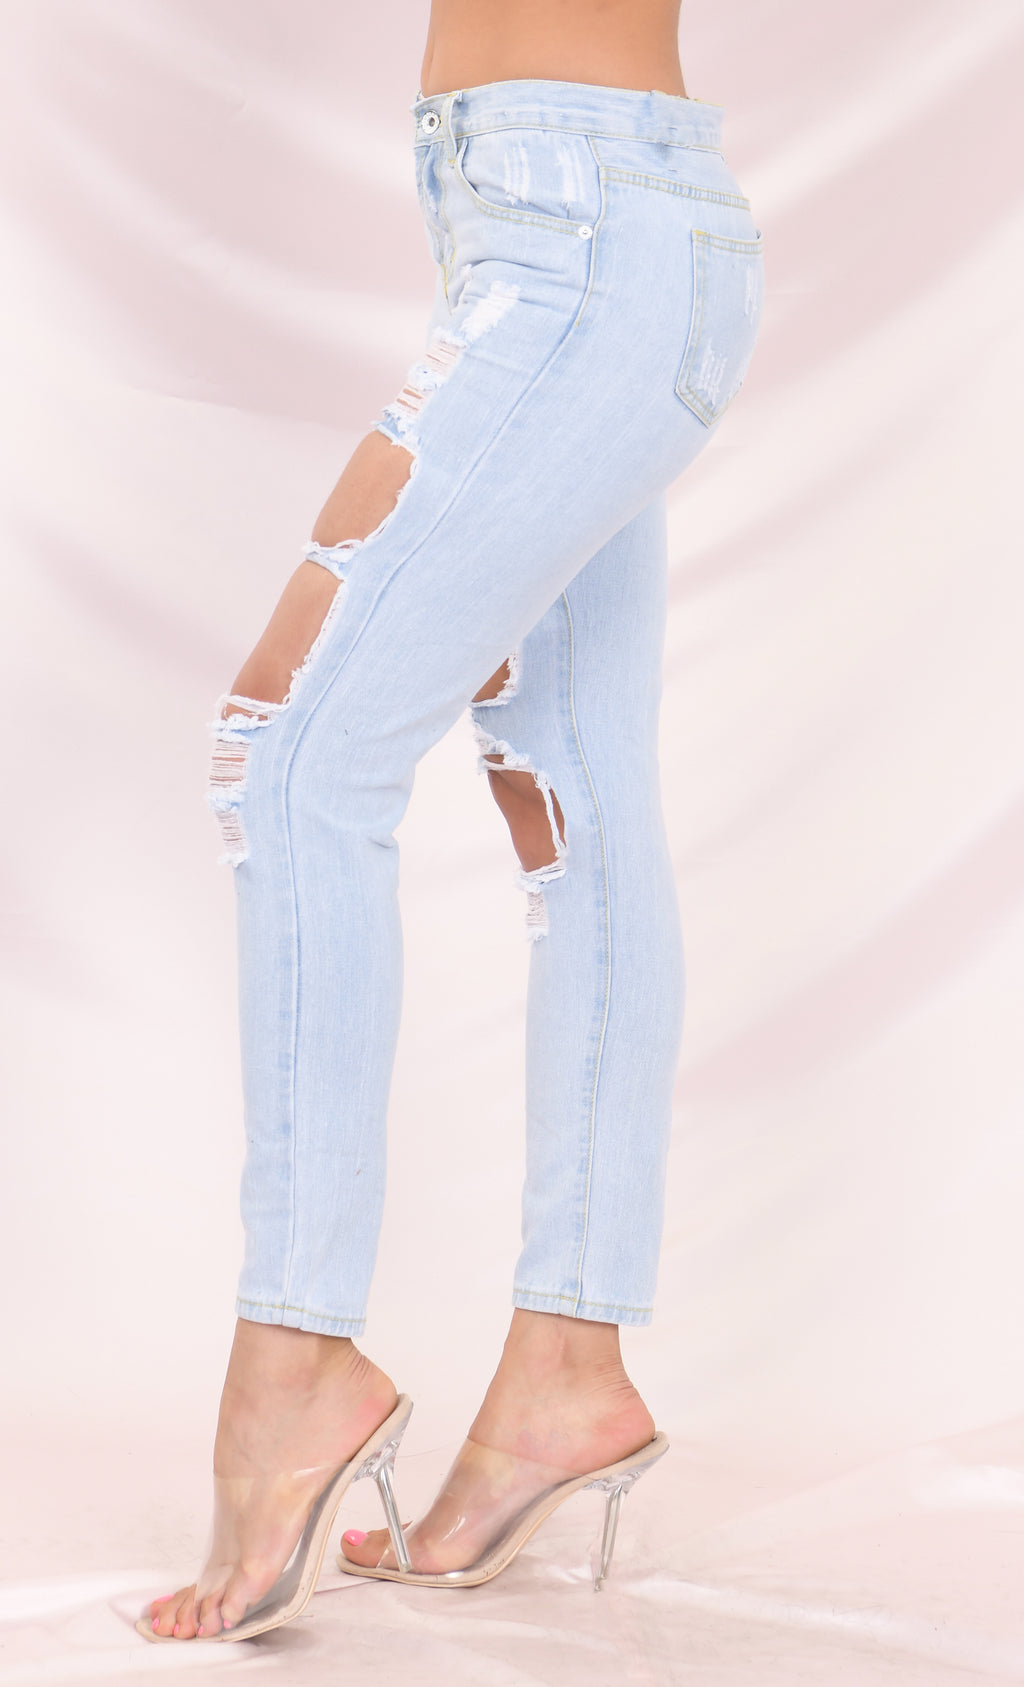 Rebel Soul Denim 5 Pocket Zip Button Destroyed Ripped Cropped Ankle Mid Rise Jeans Pants